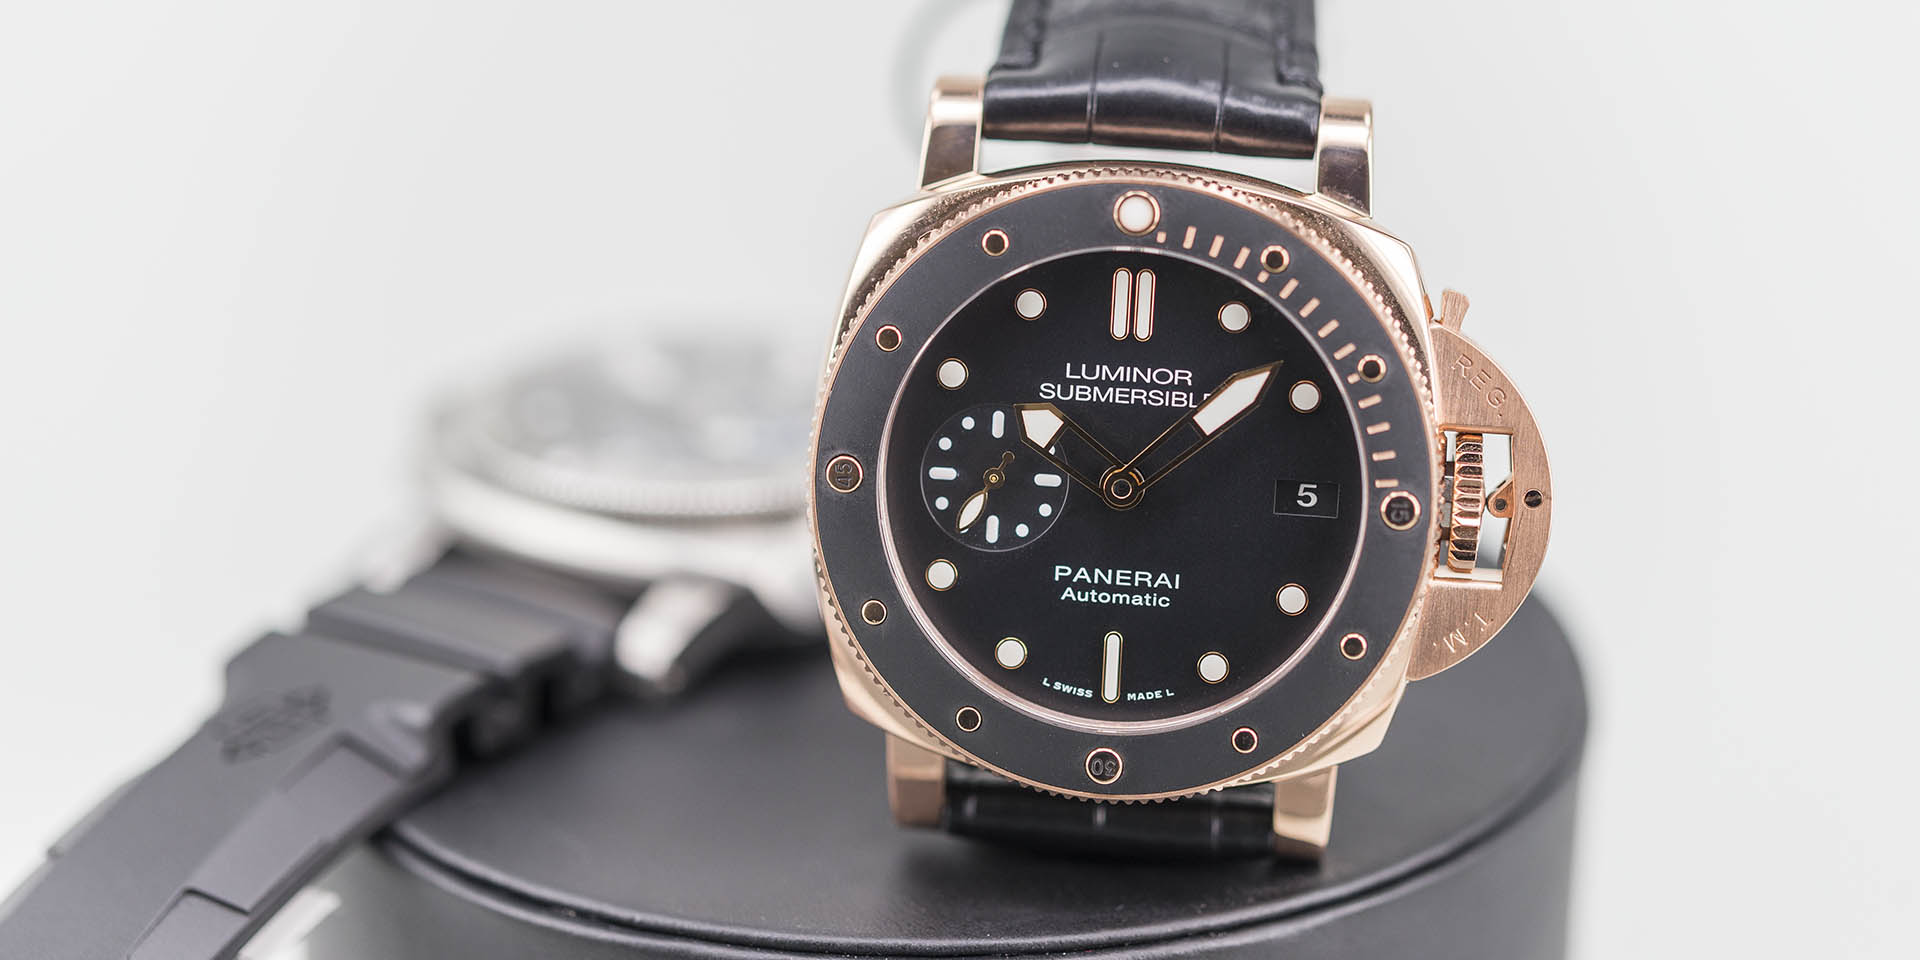 panerai-luminor-1950-submersible-pam00682-pam00684-10.jpg